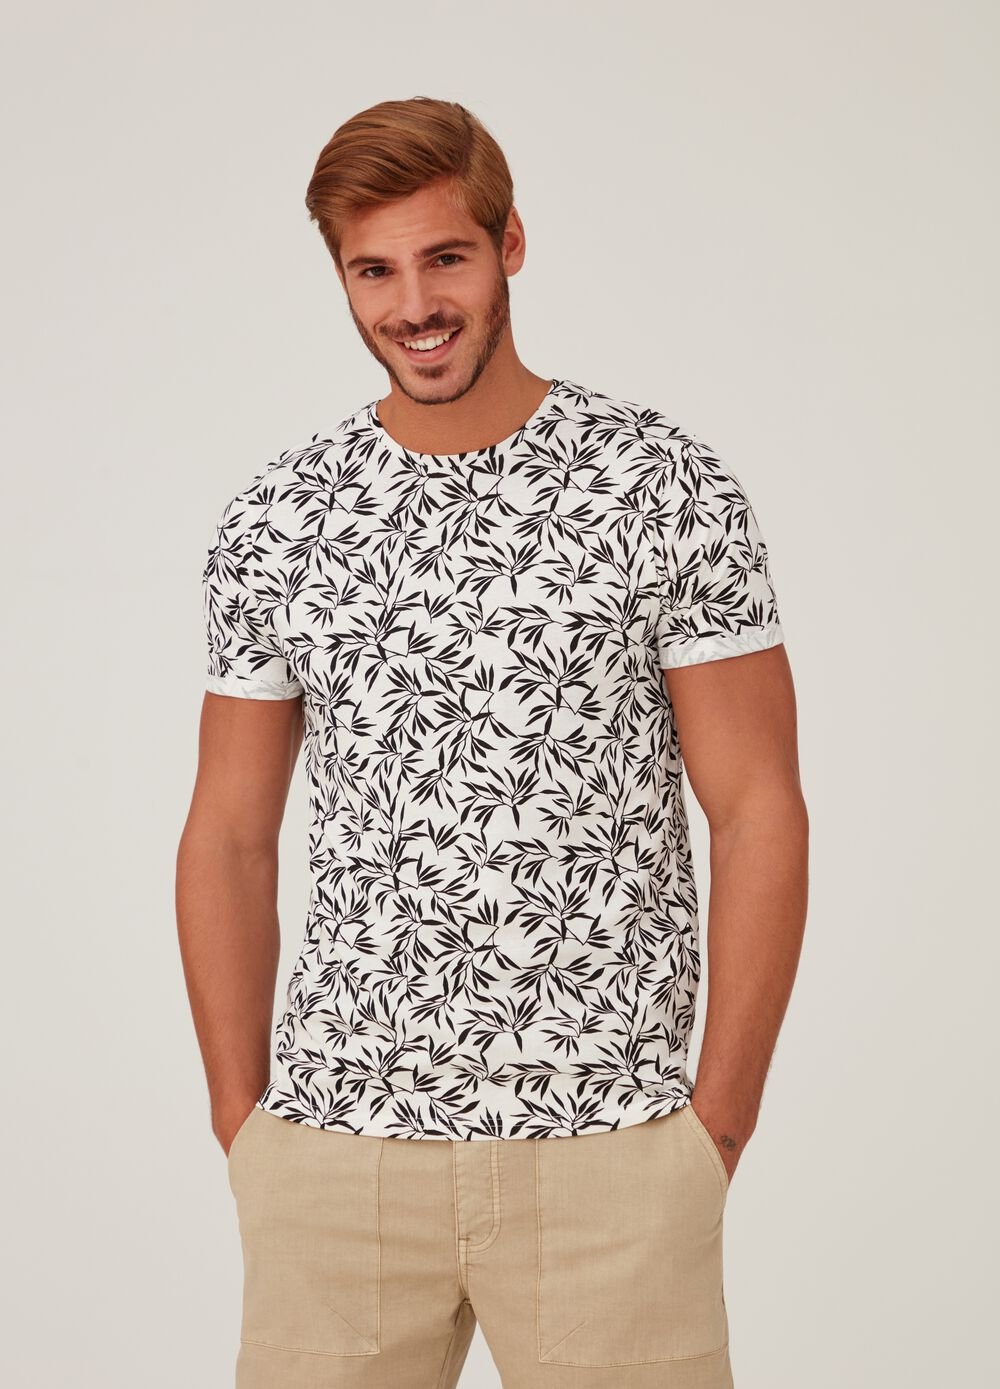 T-shirt in 100% cotton with foliage print